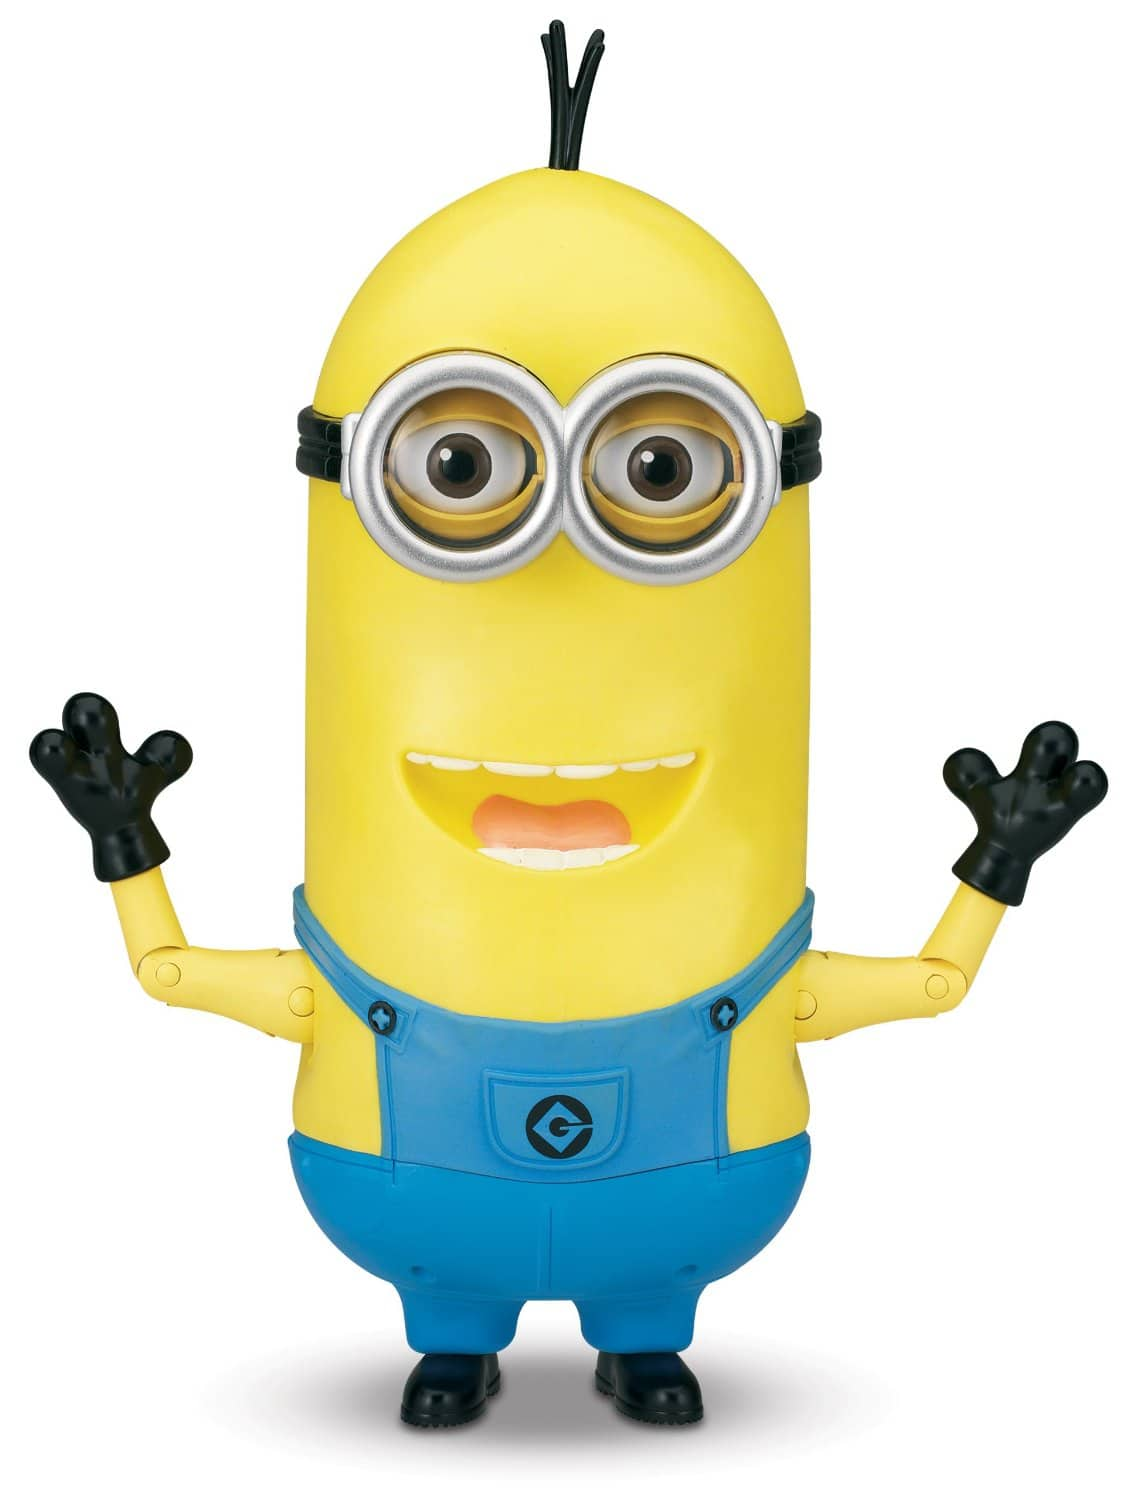 Despicable Me Minion Tim The Singing Action Figure $16.59 FS with Prime at Amazon